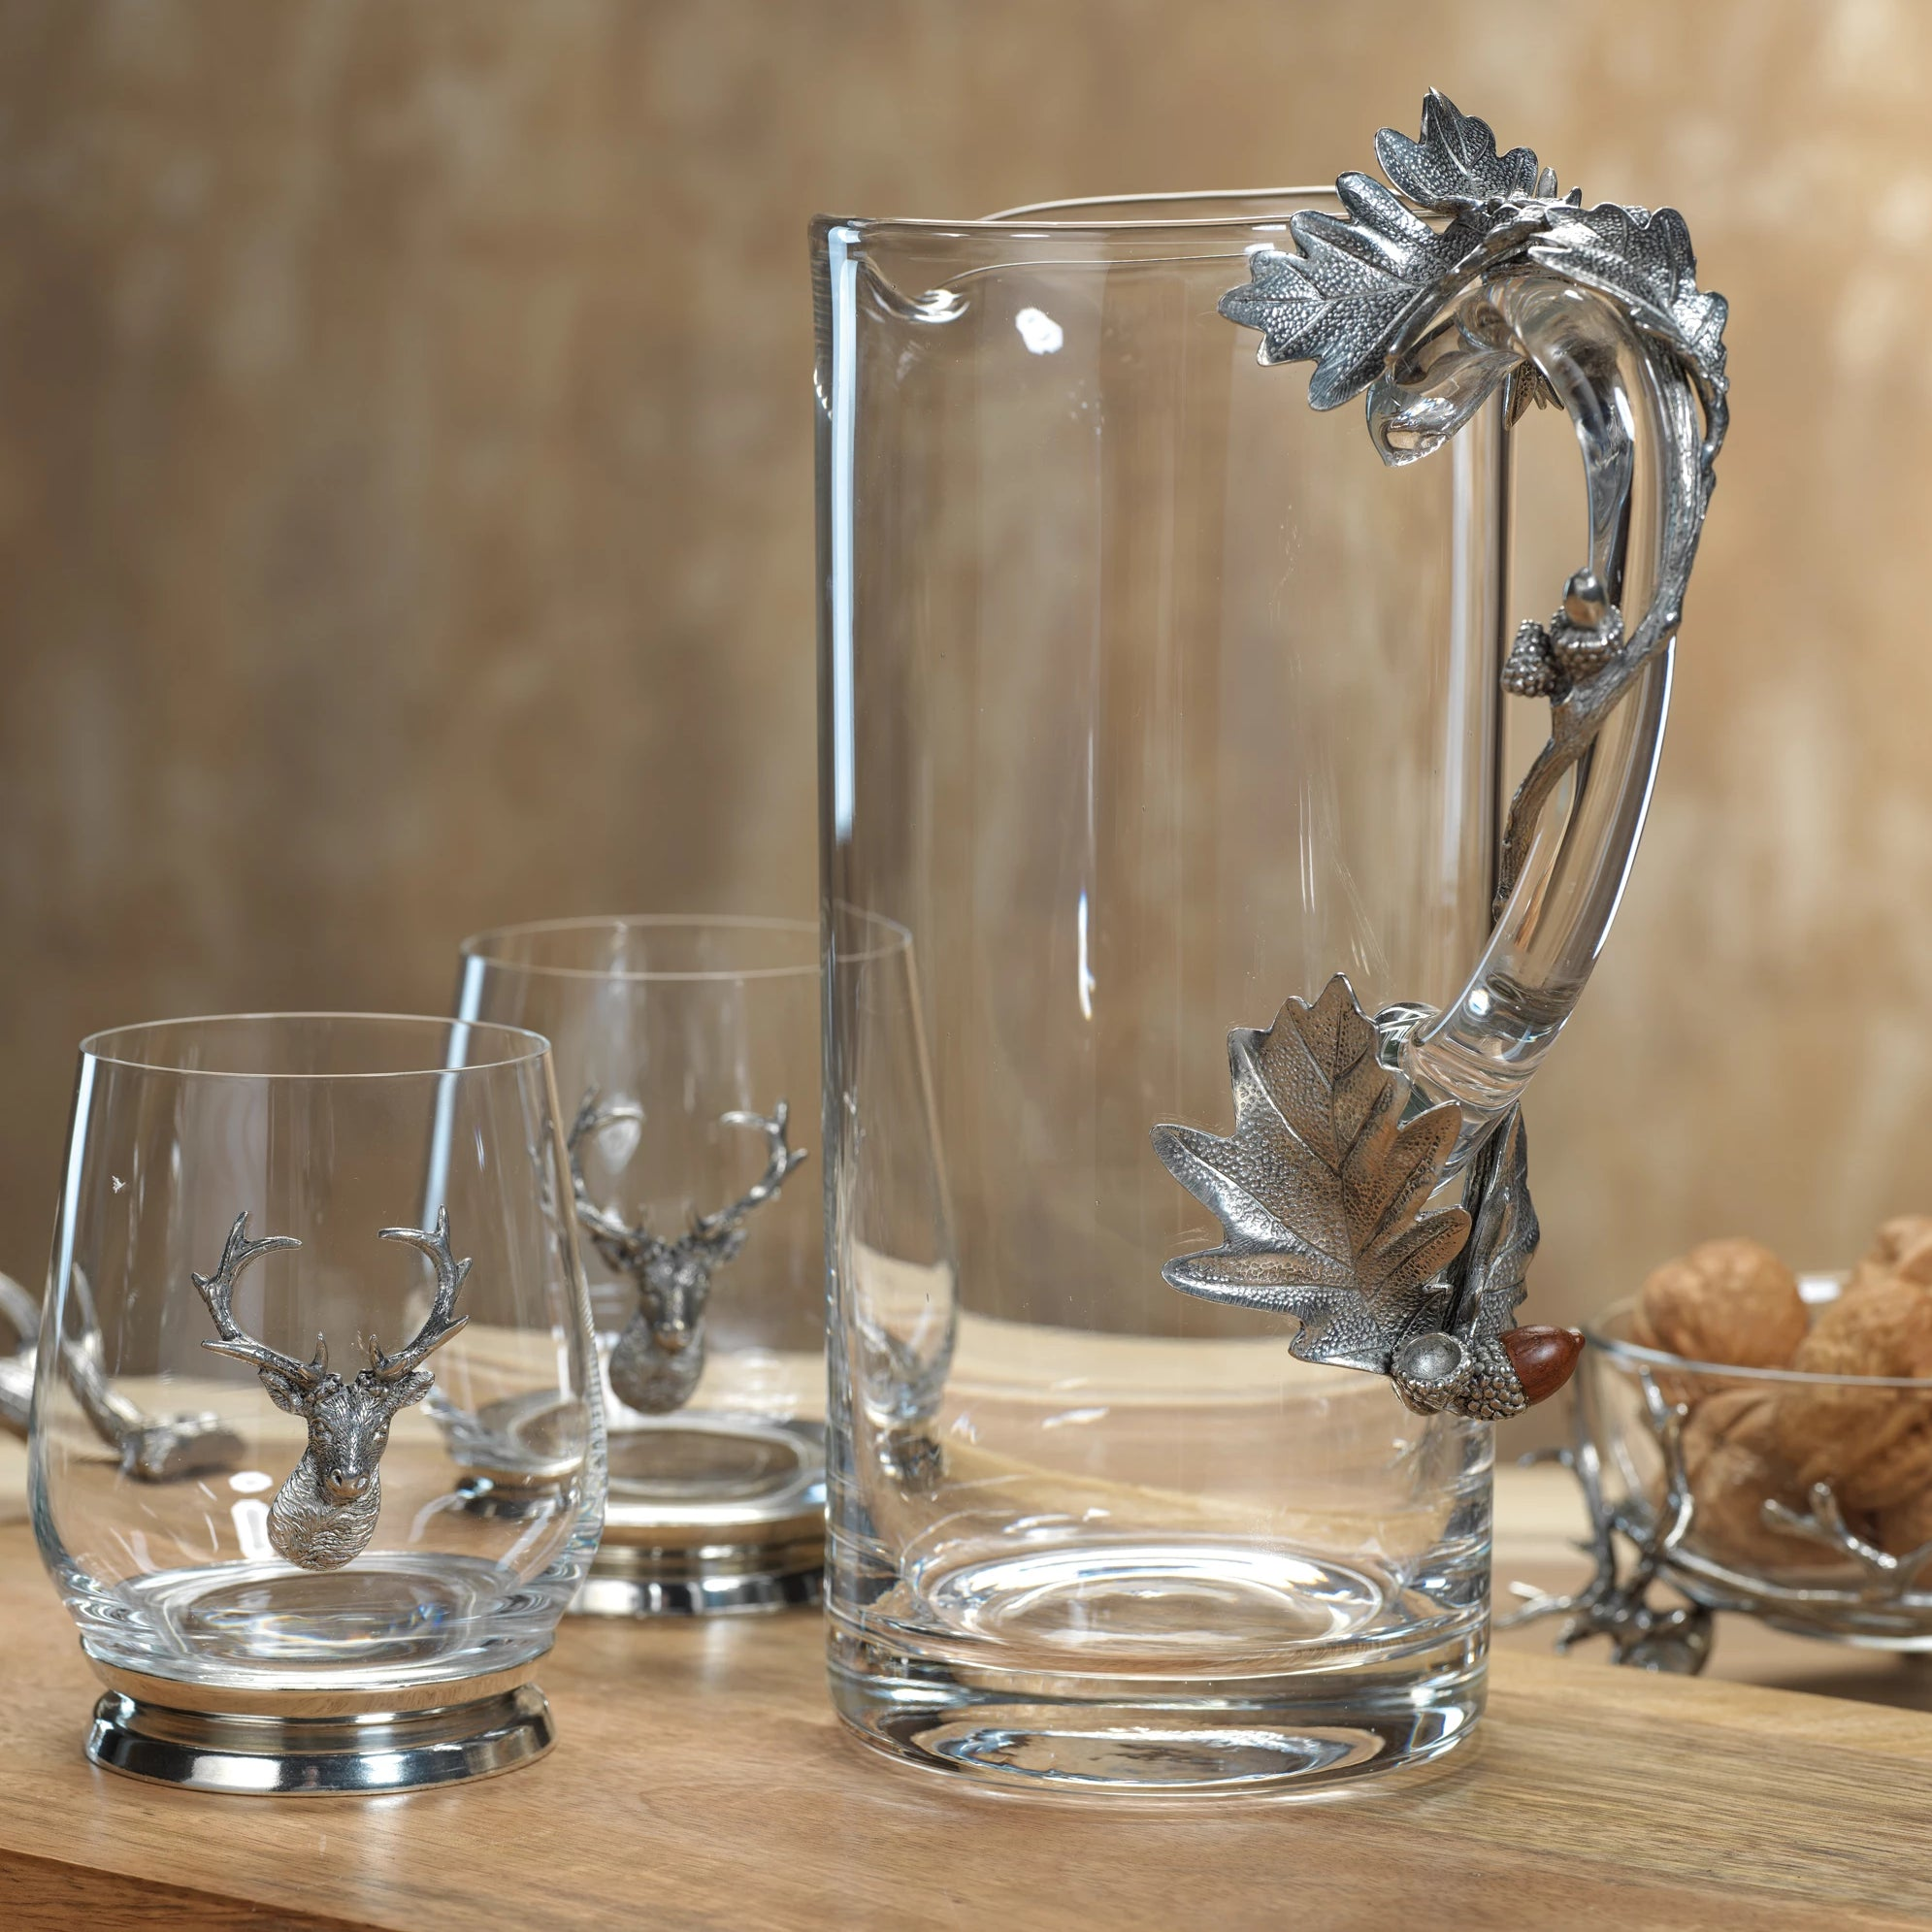 St. Anton Pewter and Glass Pitcher and Tumblers